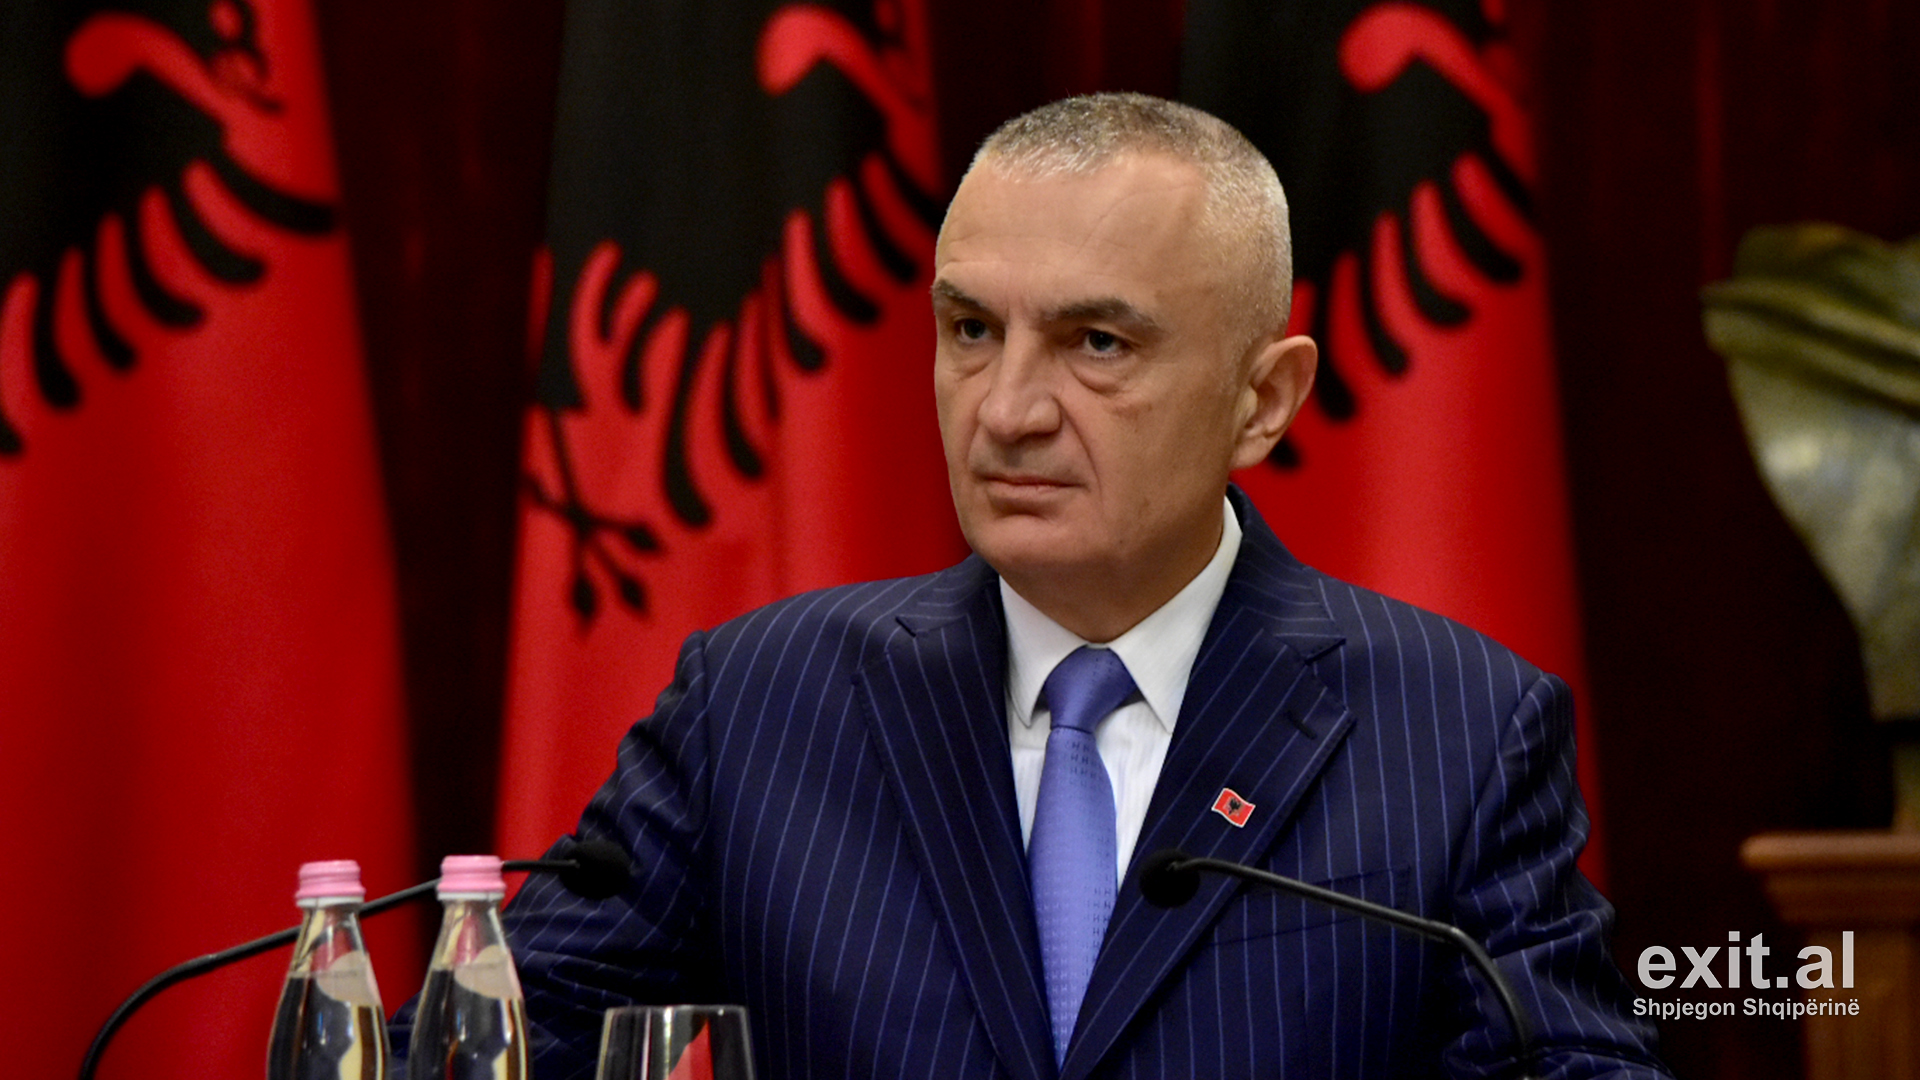 Albanian President Declares the OSCE Ambassador 'Unwelcome' in His Office